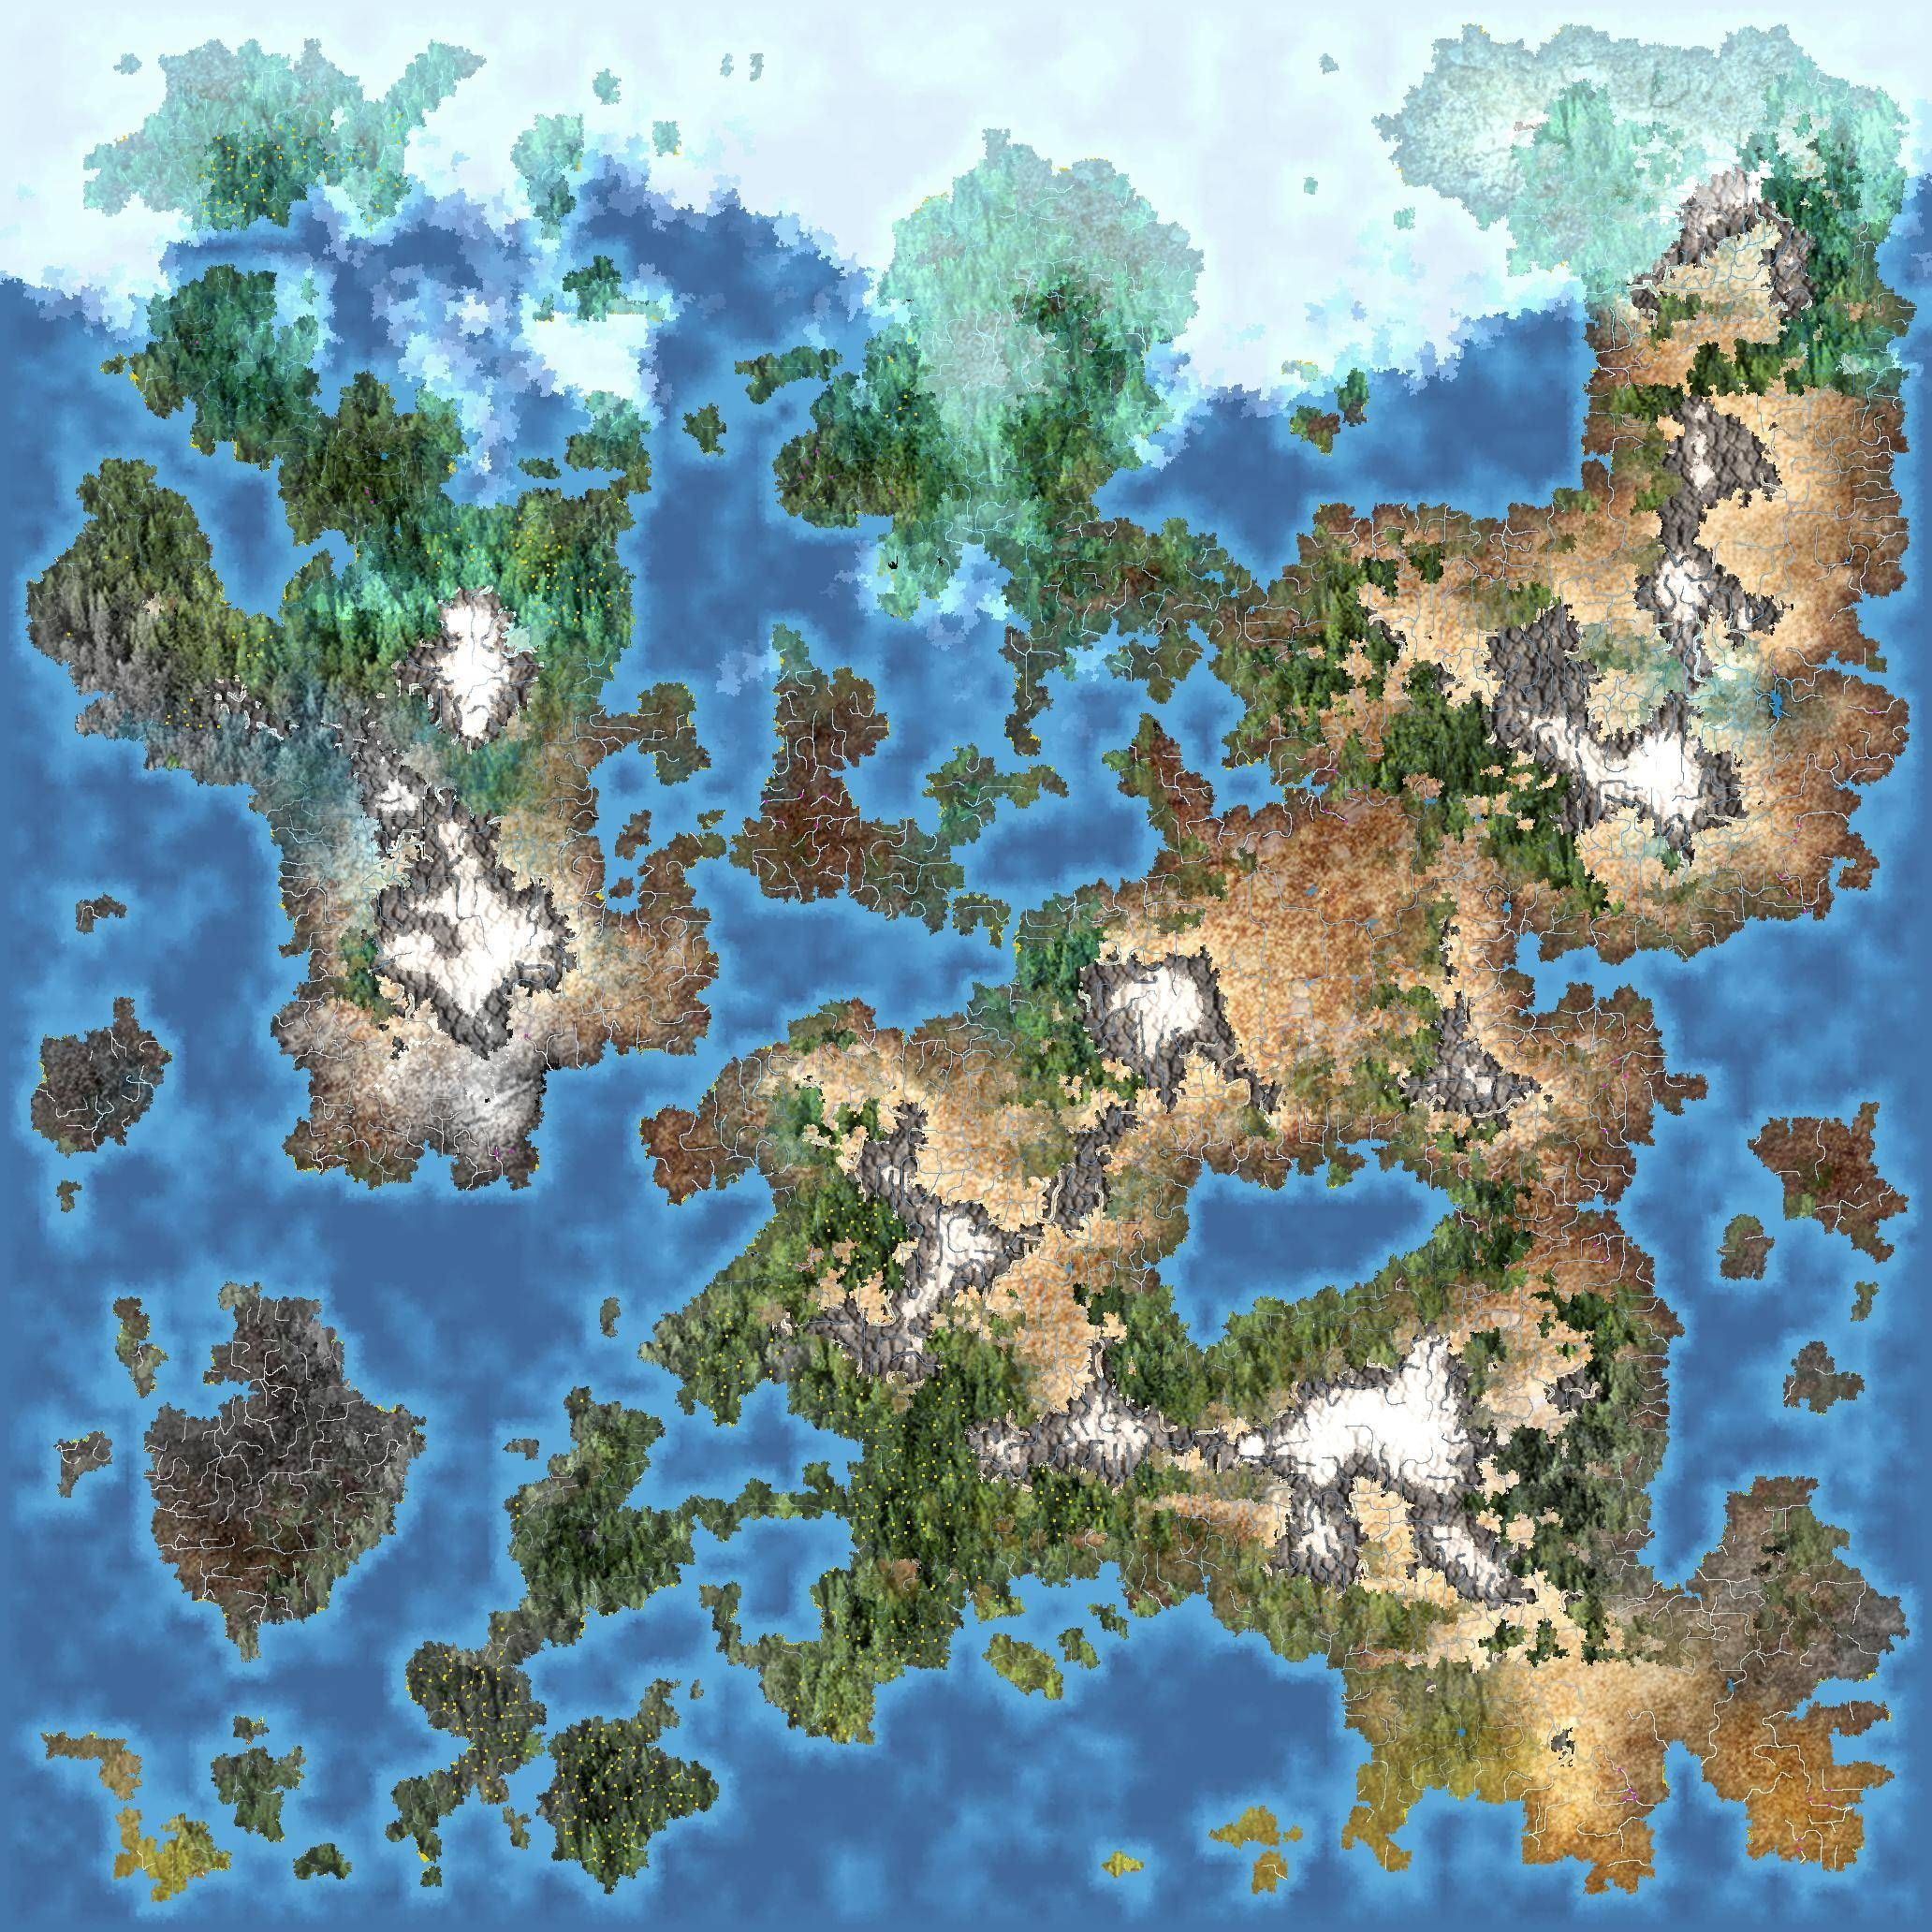 Fantasy map maker photoshop action script dungeons and dragons fantasy map maker photoshop action script gumiabroncs